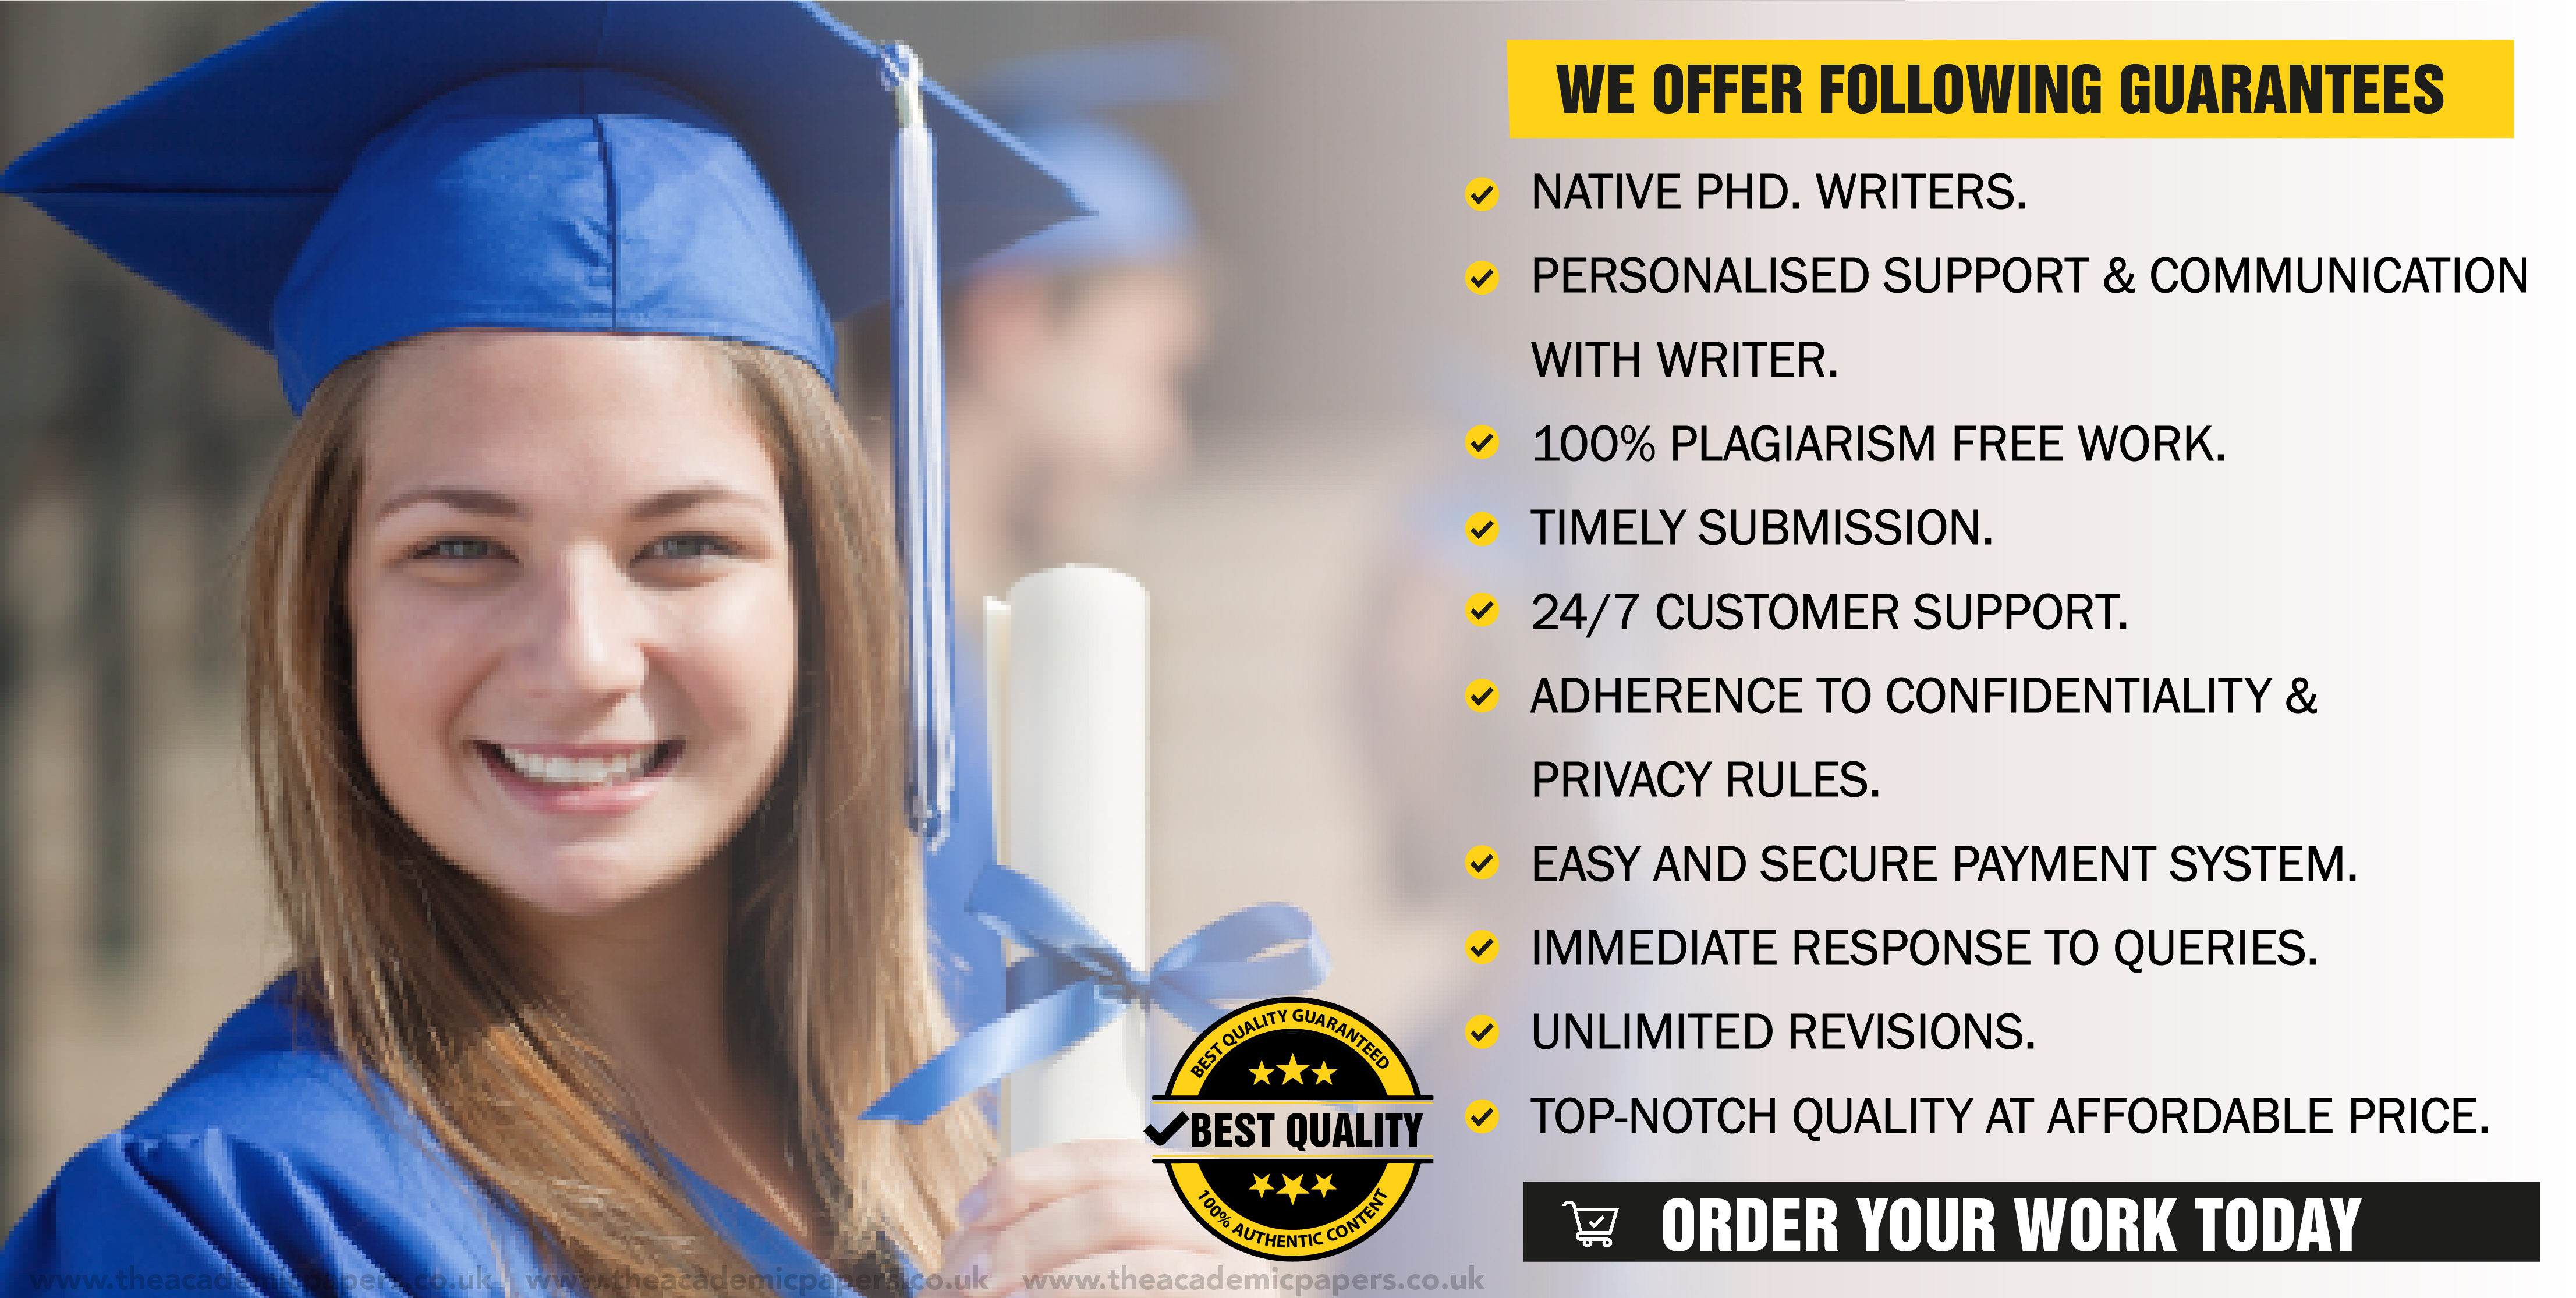 The Academic Papers - guarantees